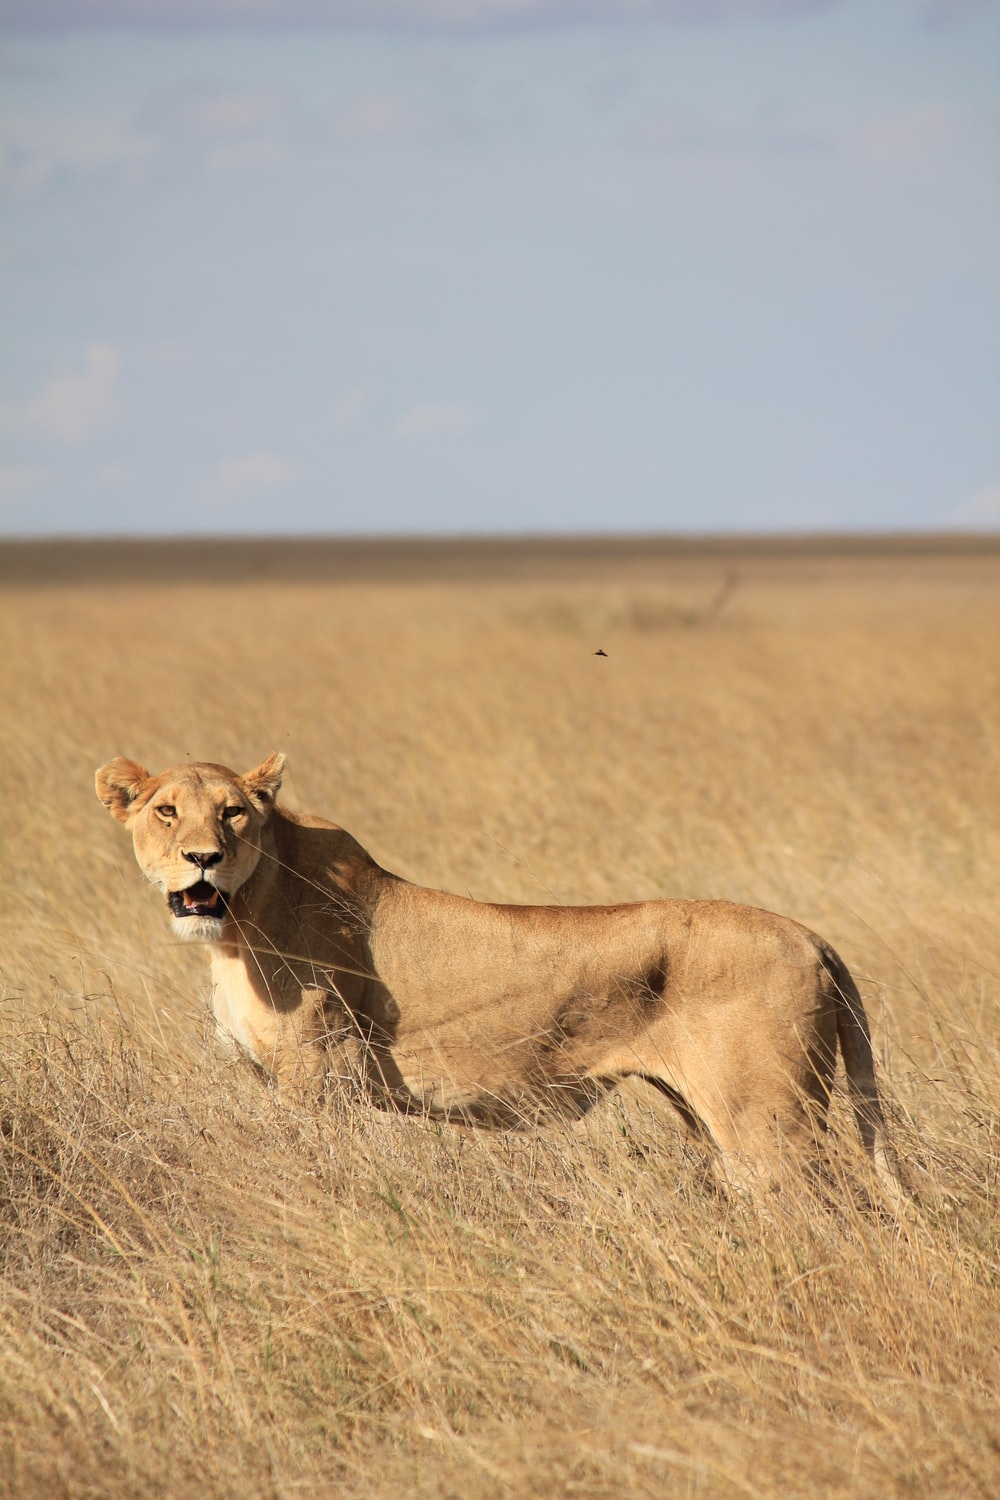 brown lioness surrounded by grass during daytime